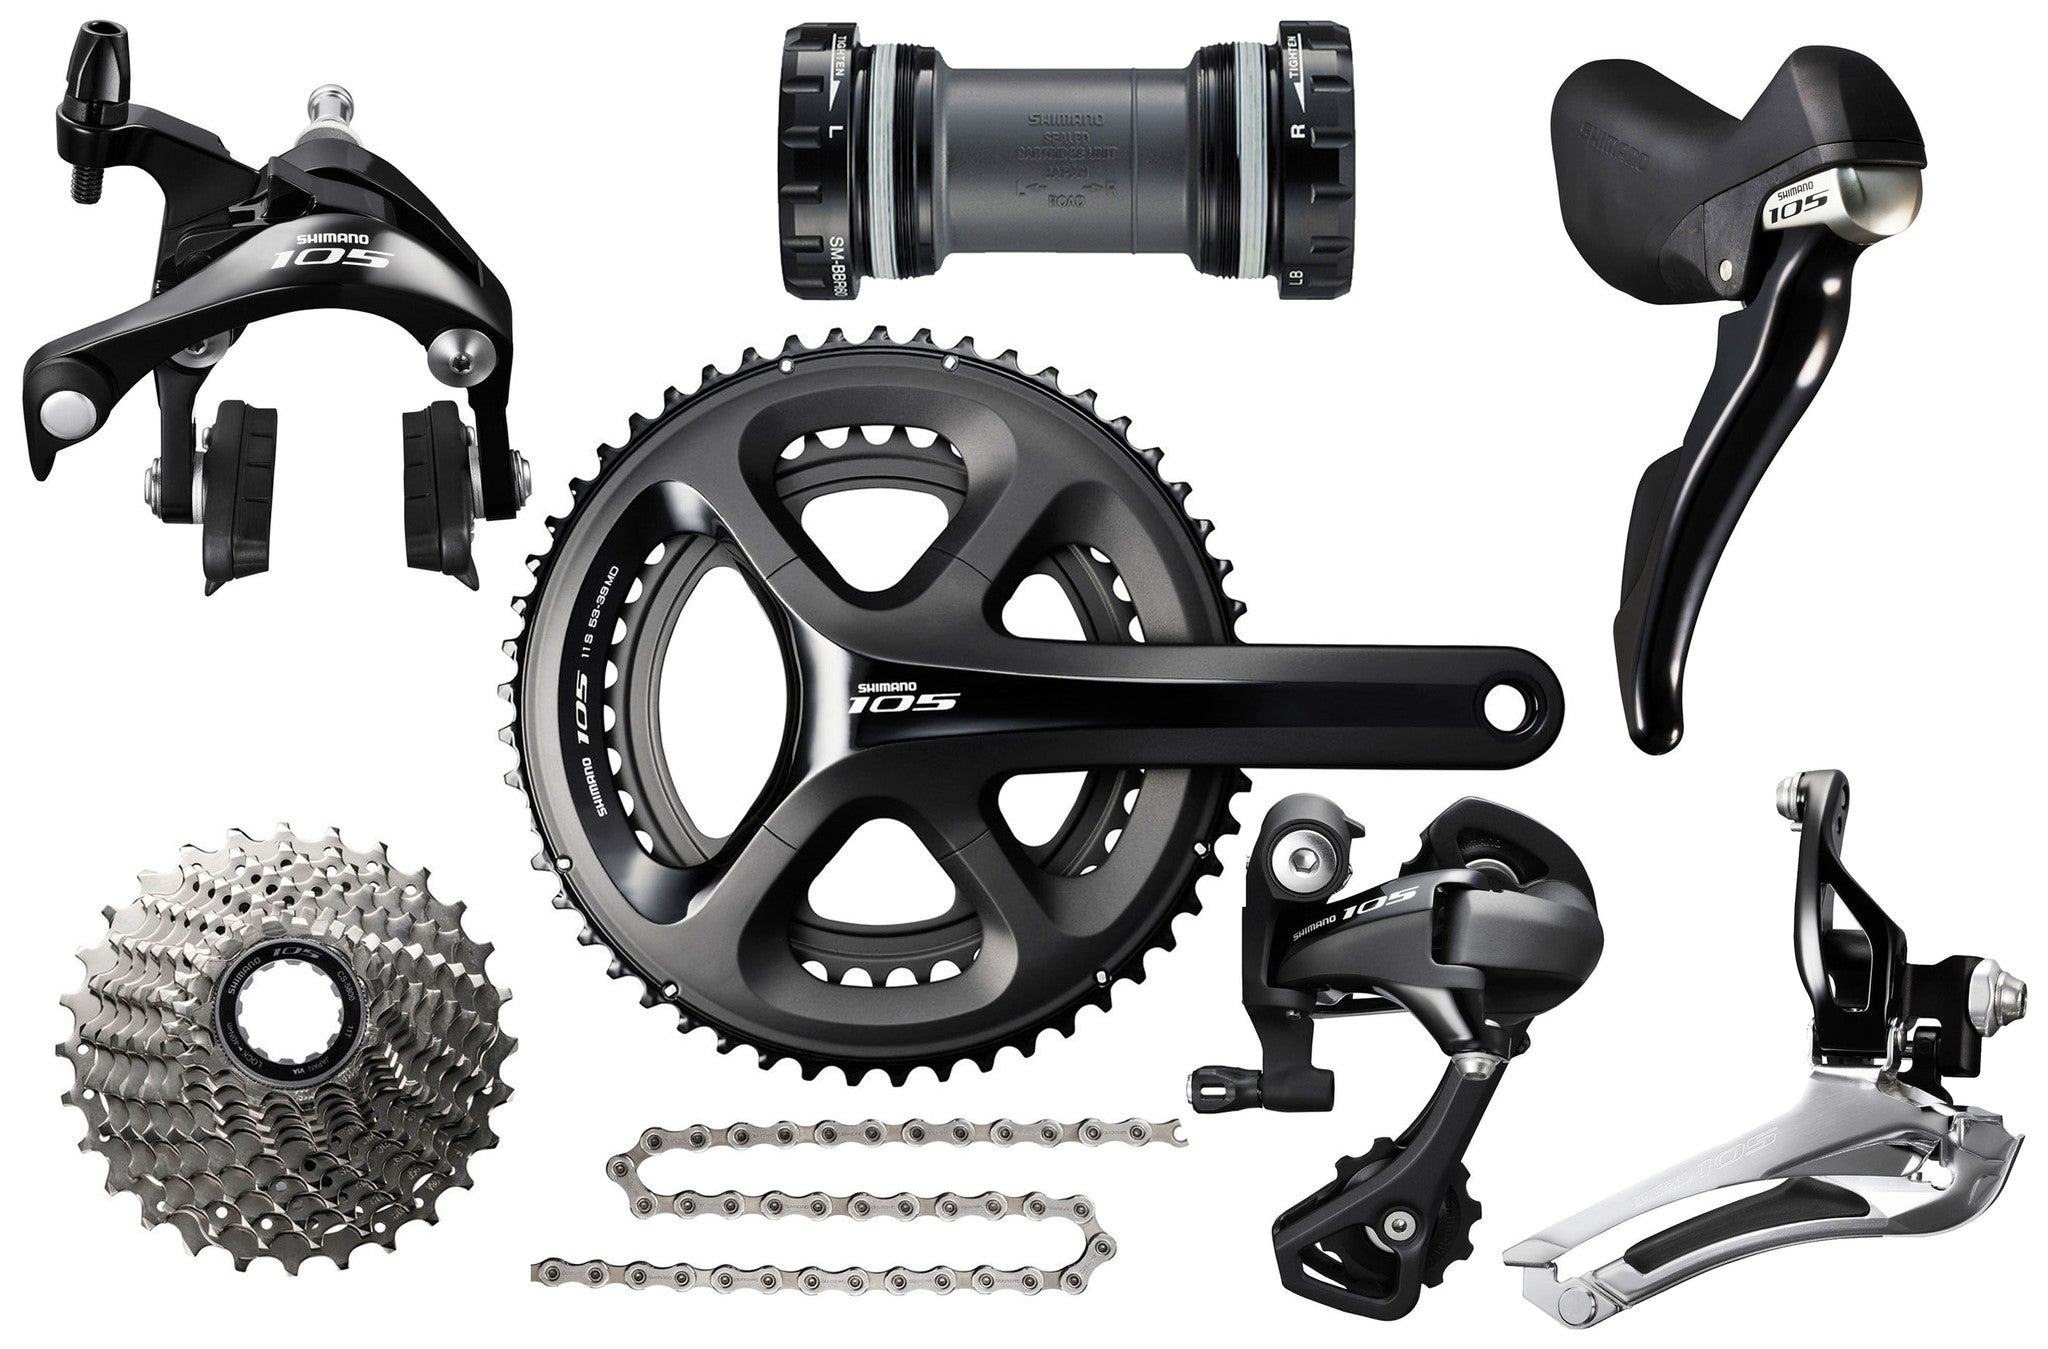 Shimano 105 11 Speed Mechanical Groupset Black - Racer Sportif